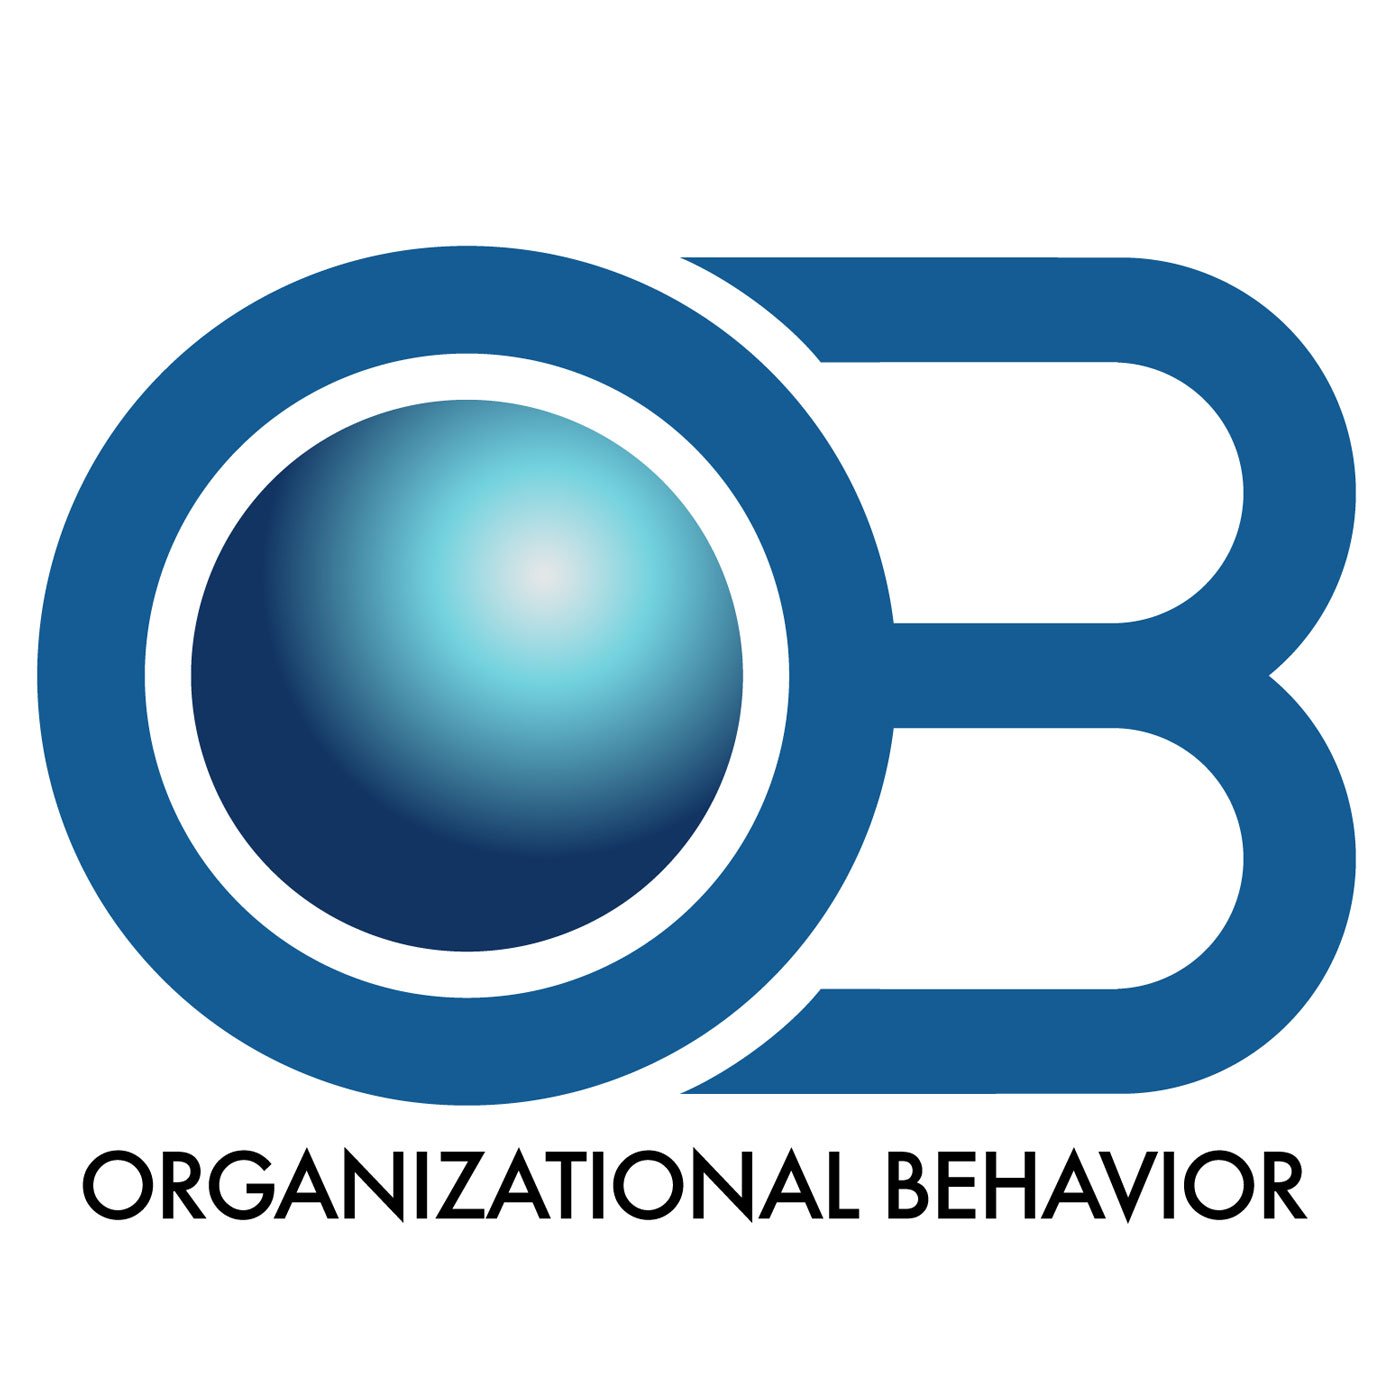 Team clipart organizational behavior. Audio podcast episodes obweb